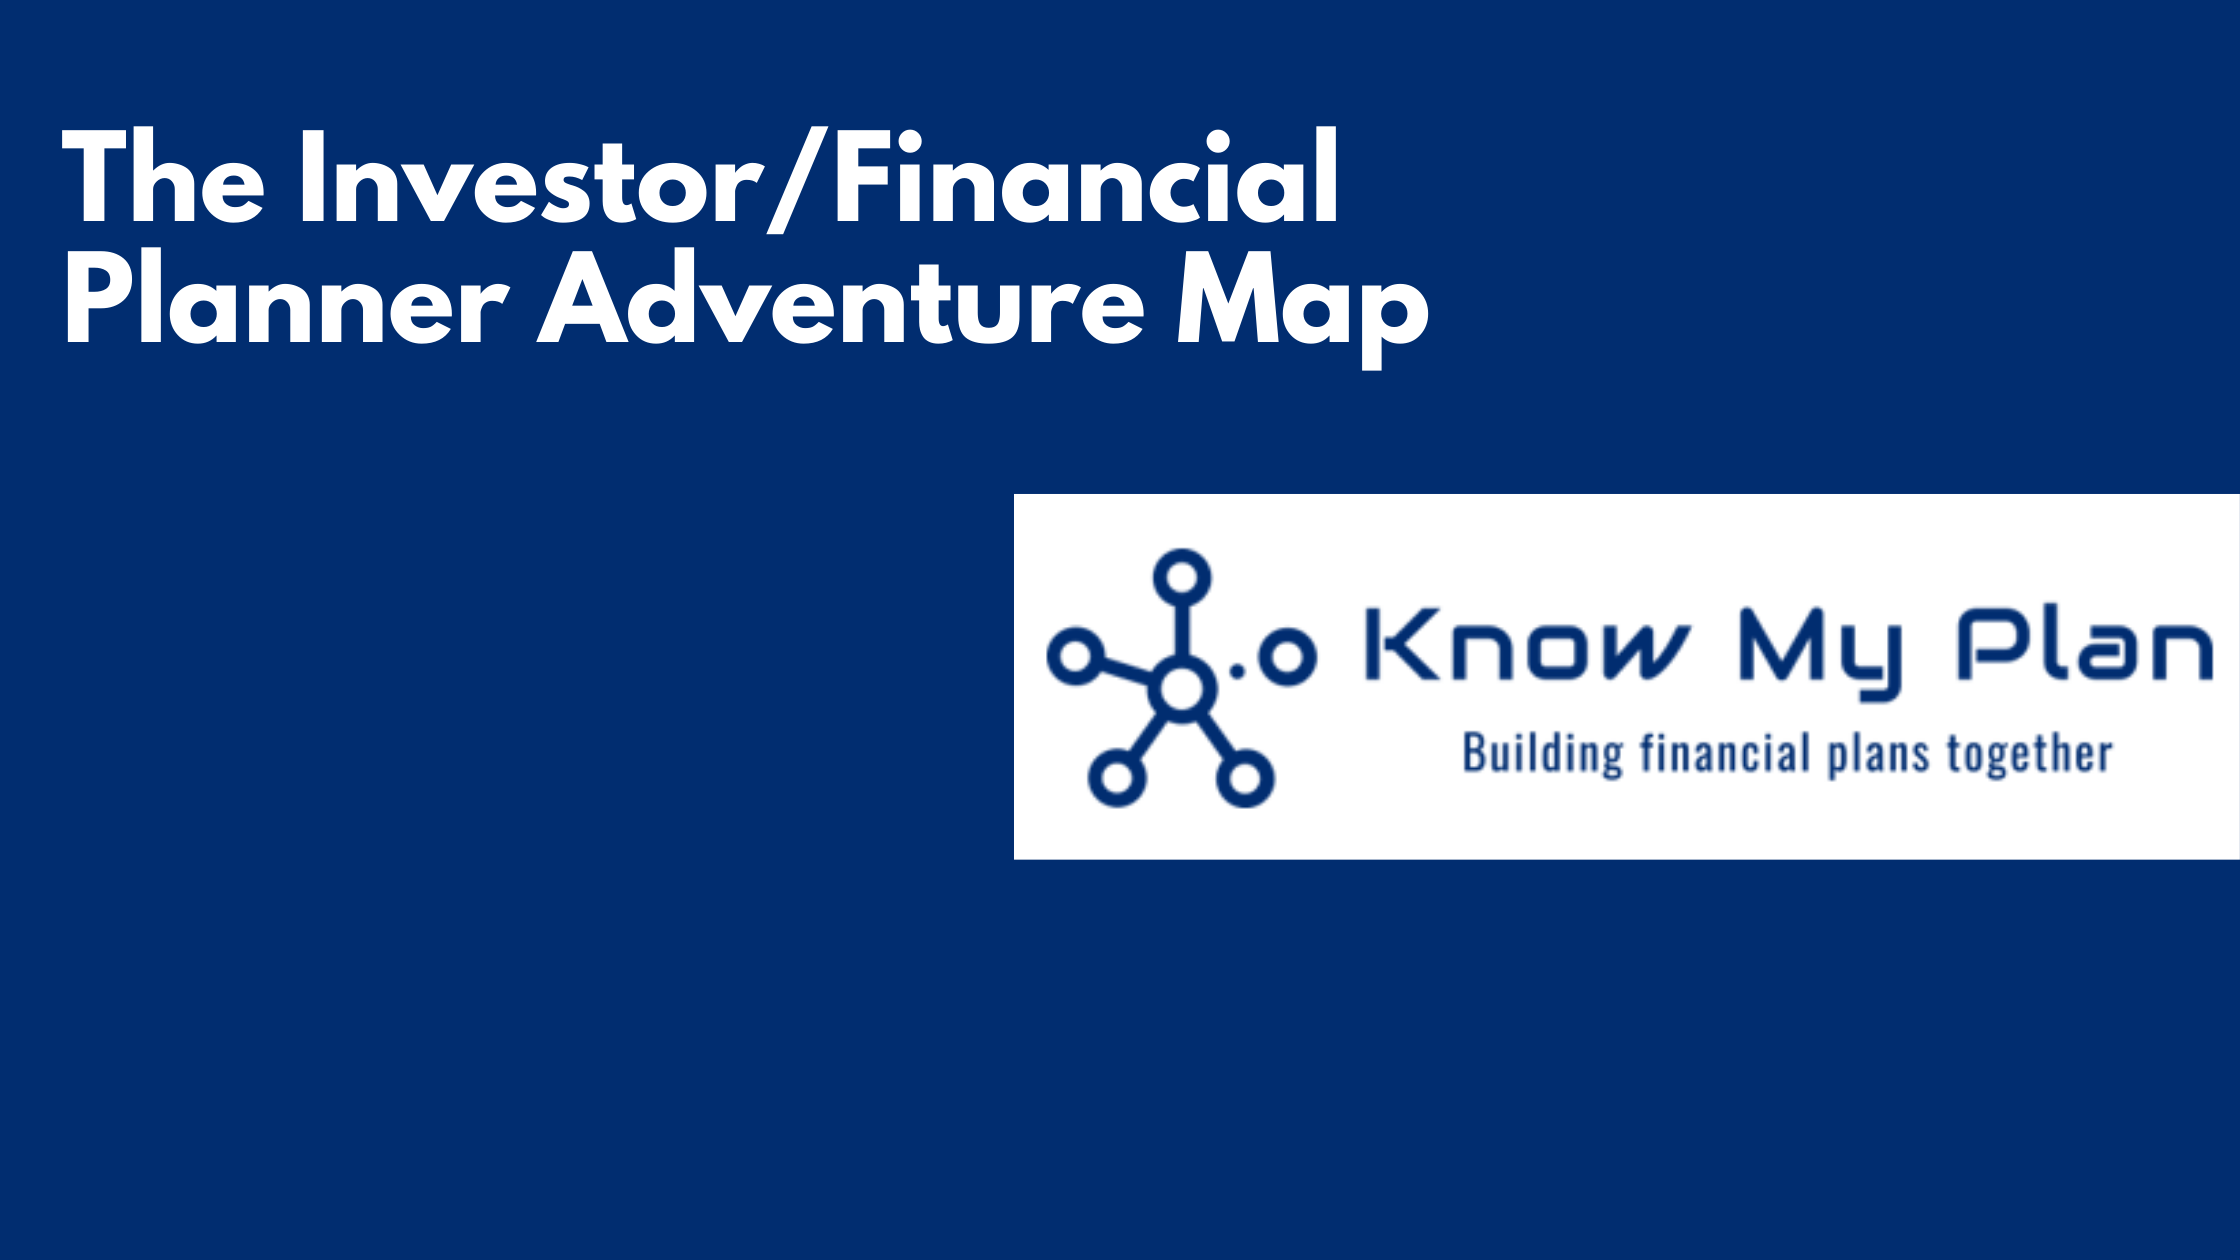 The Investor/Financial Planner Adventure Map Thumbnail